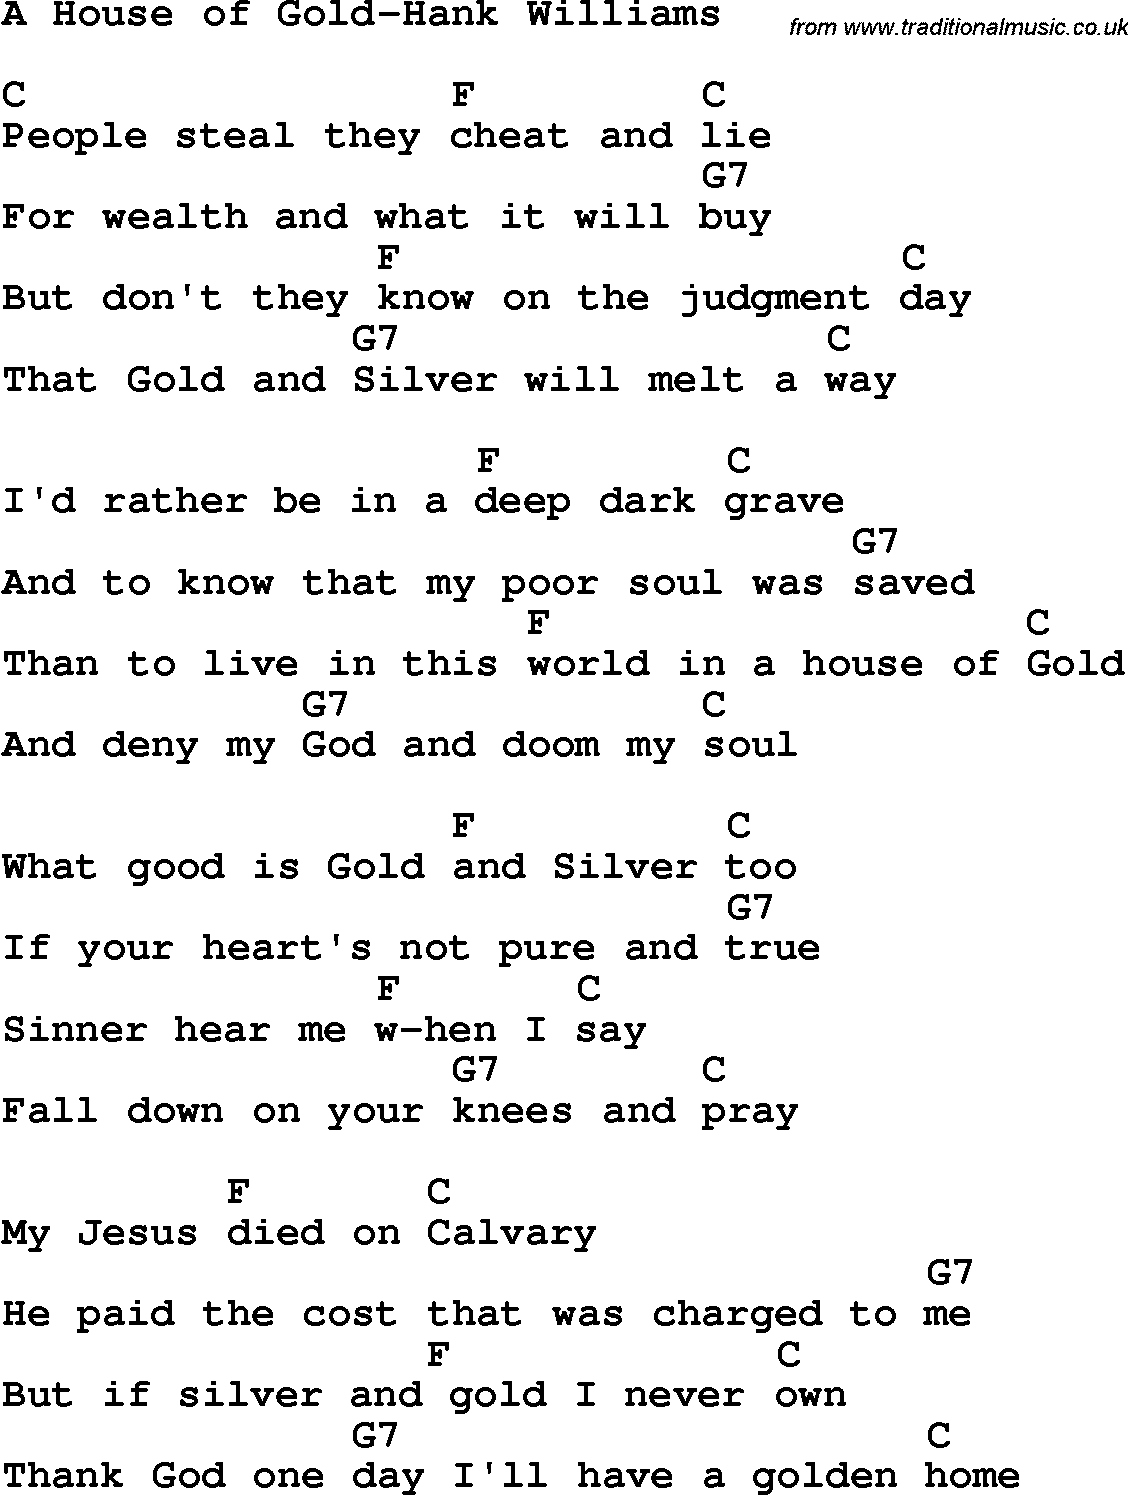 House Of Gold Chords Country Southern And Bluegrass Gospel Song A House Of Gold Hank